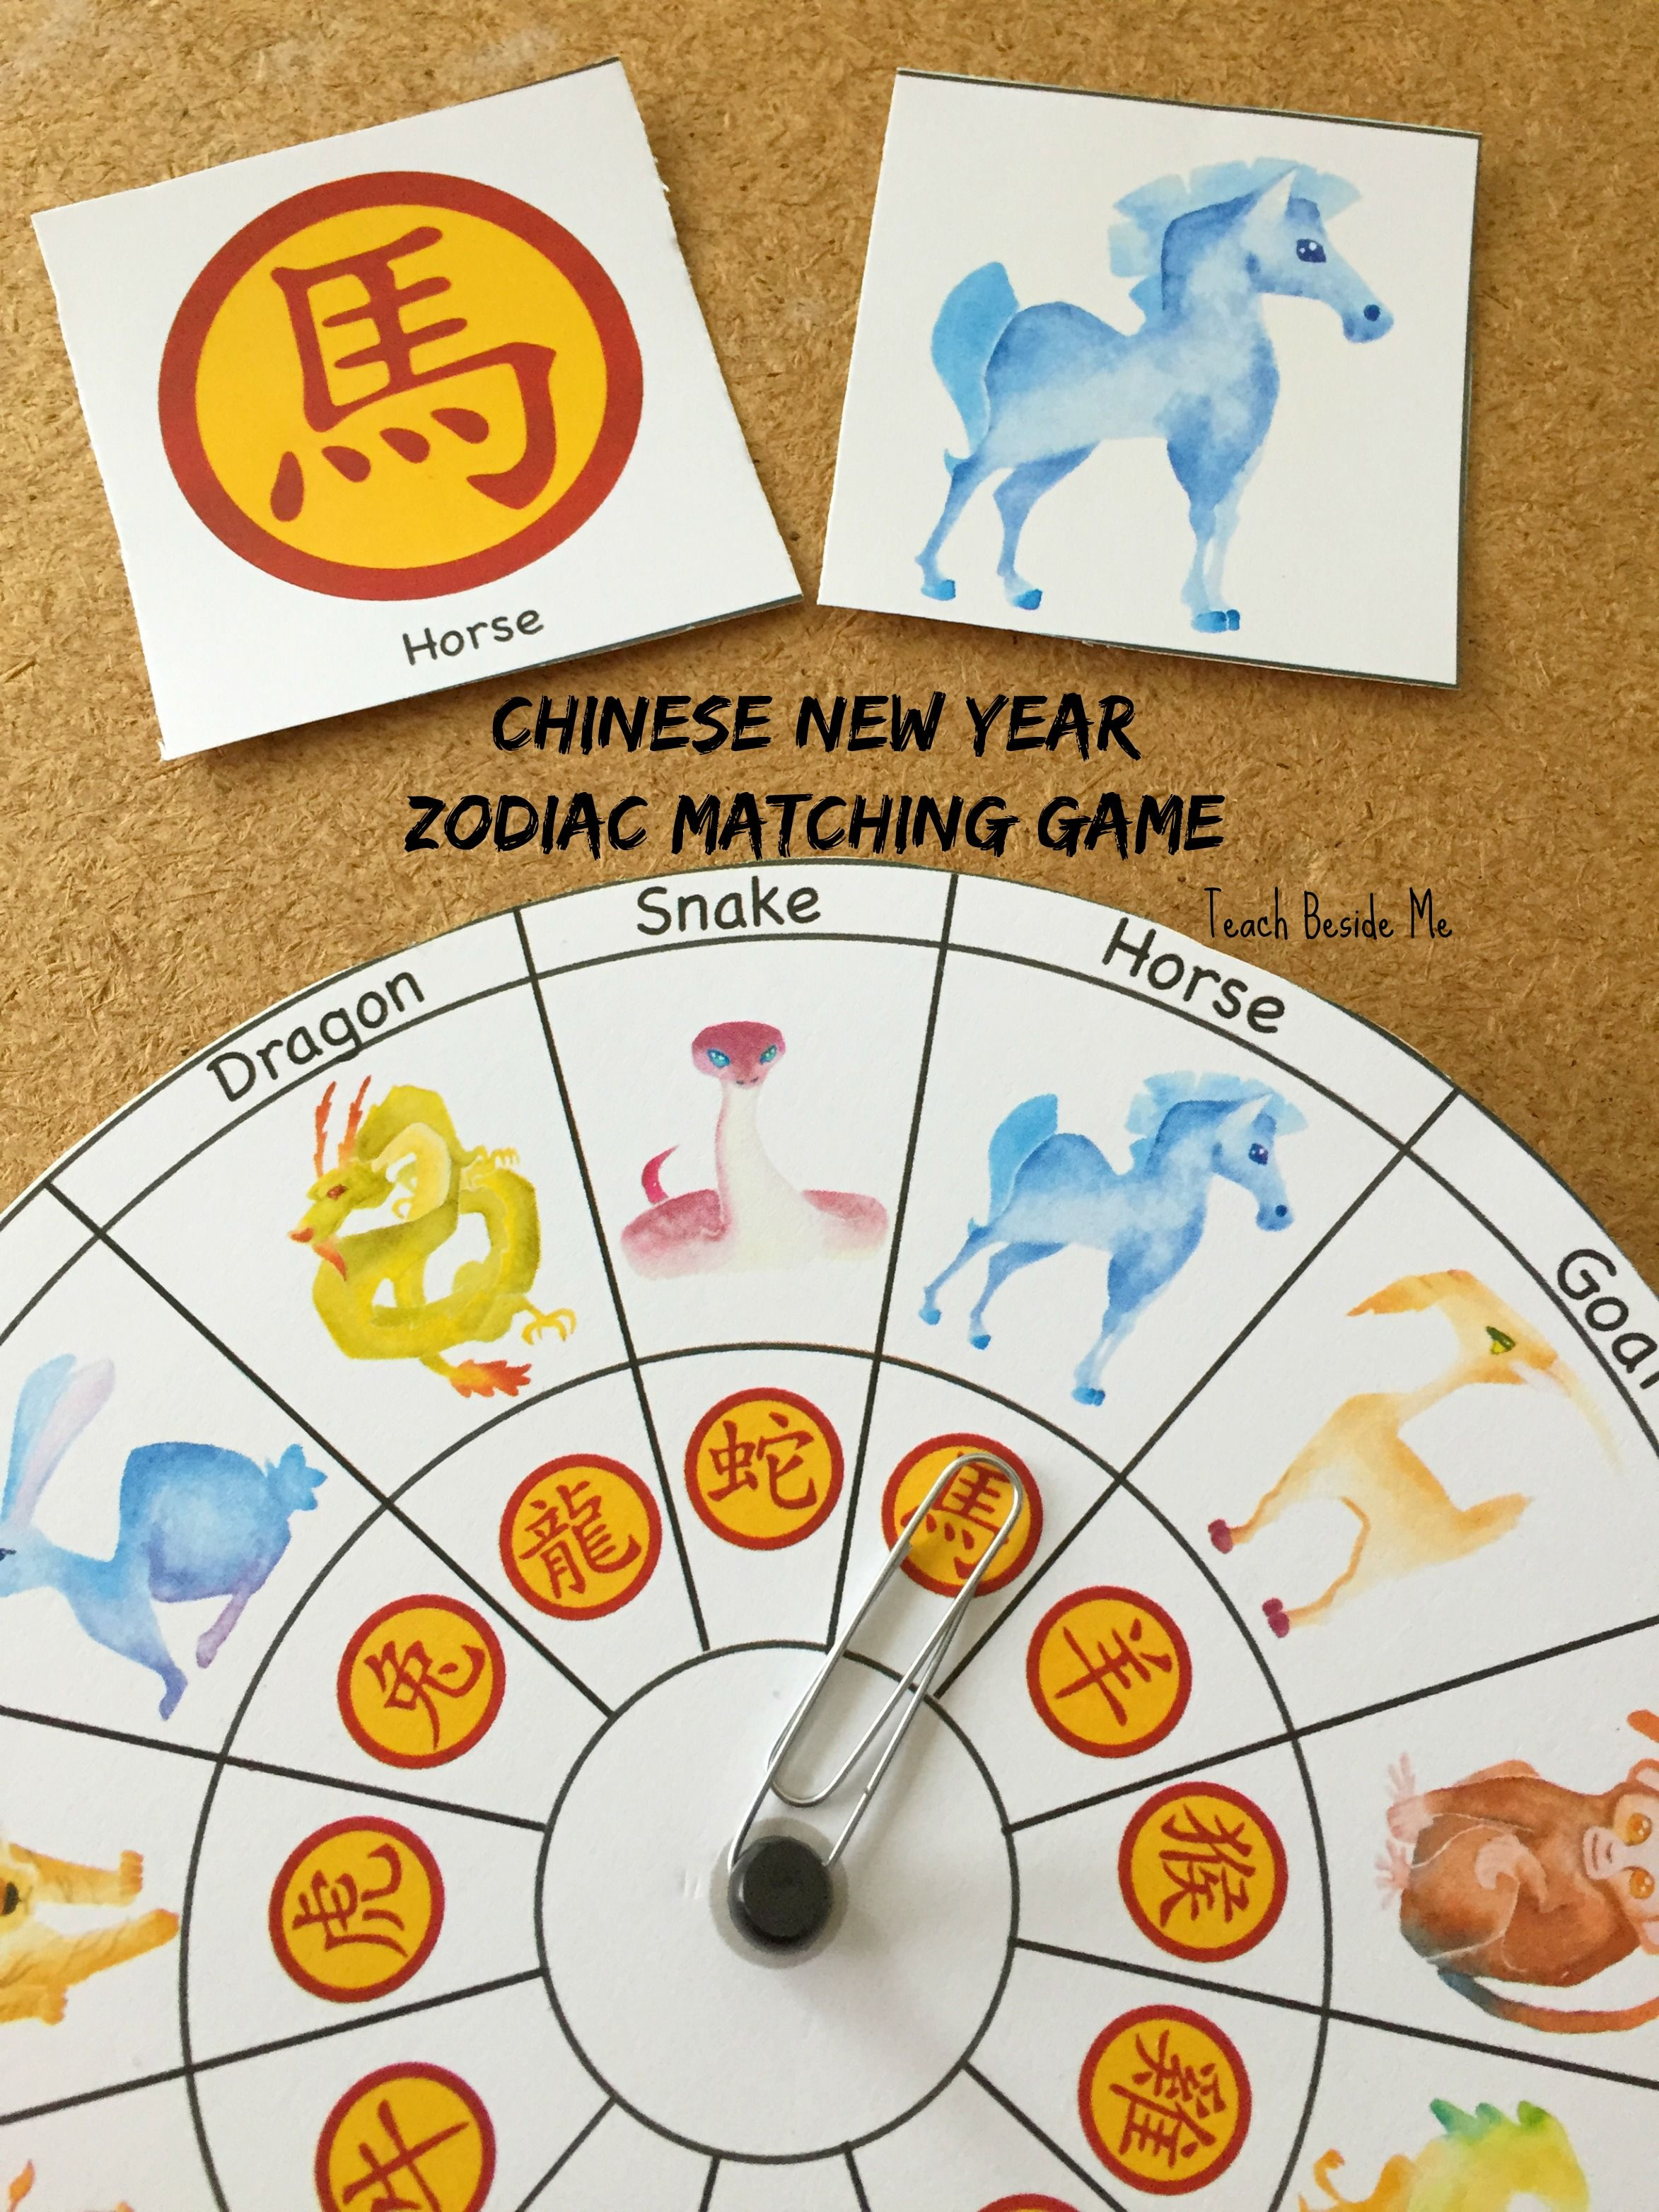 Chinese New Year Zodiac Matching Game